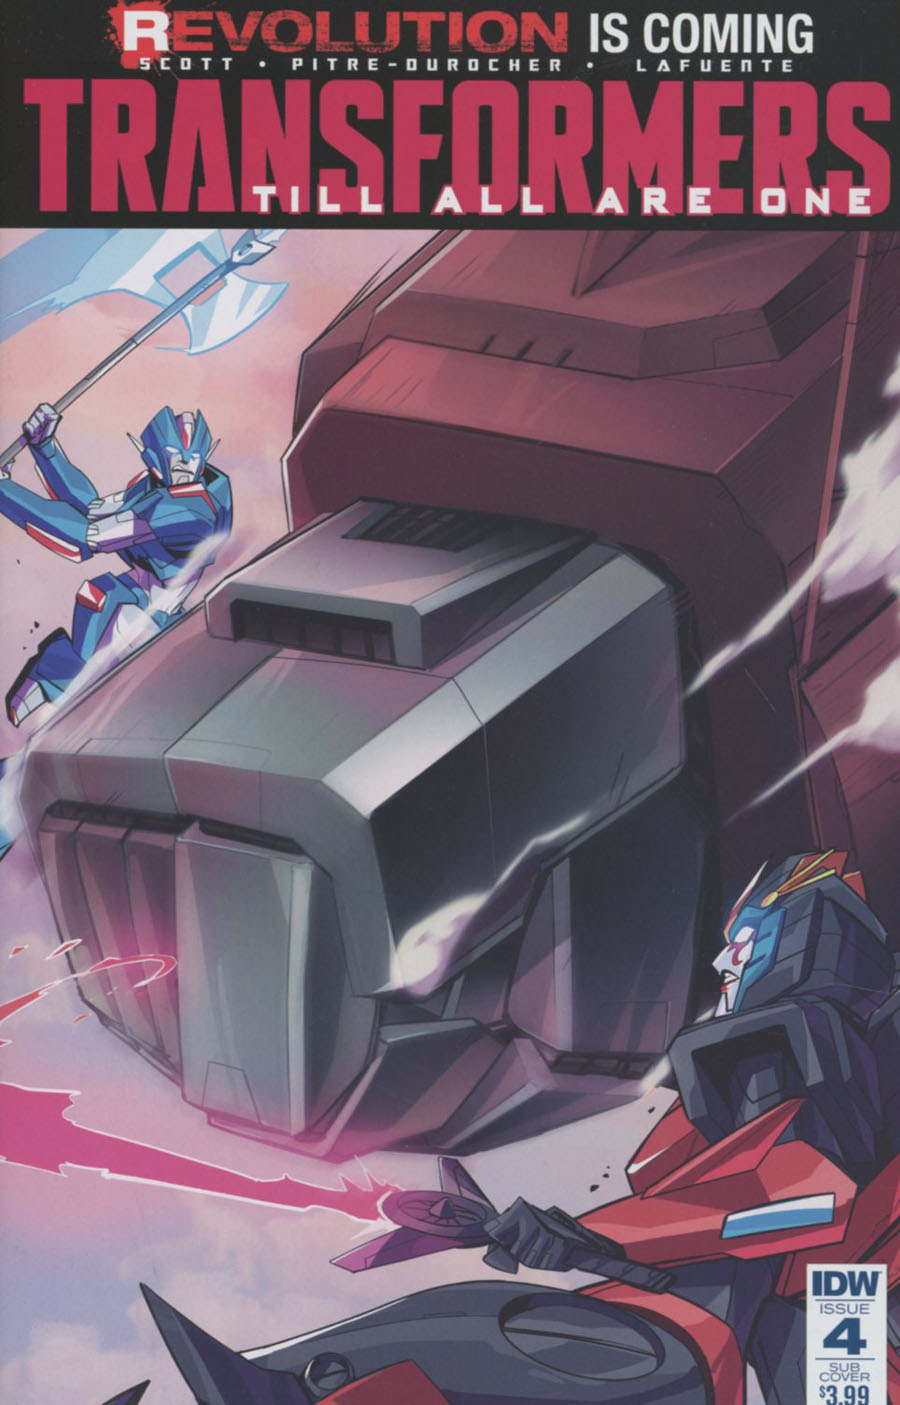 Transformers Till All Are One #4 Cover B Variant Priscilla Tramontano Subscription Cover (Revolution Tie-In)